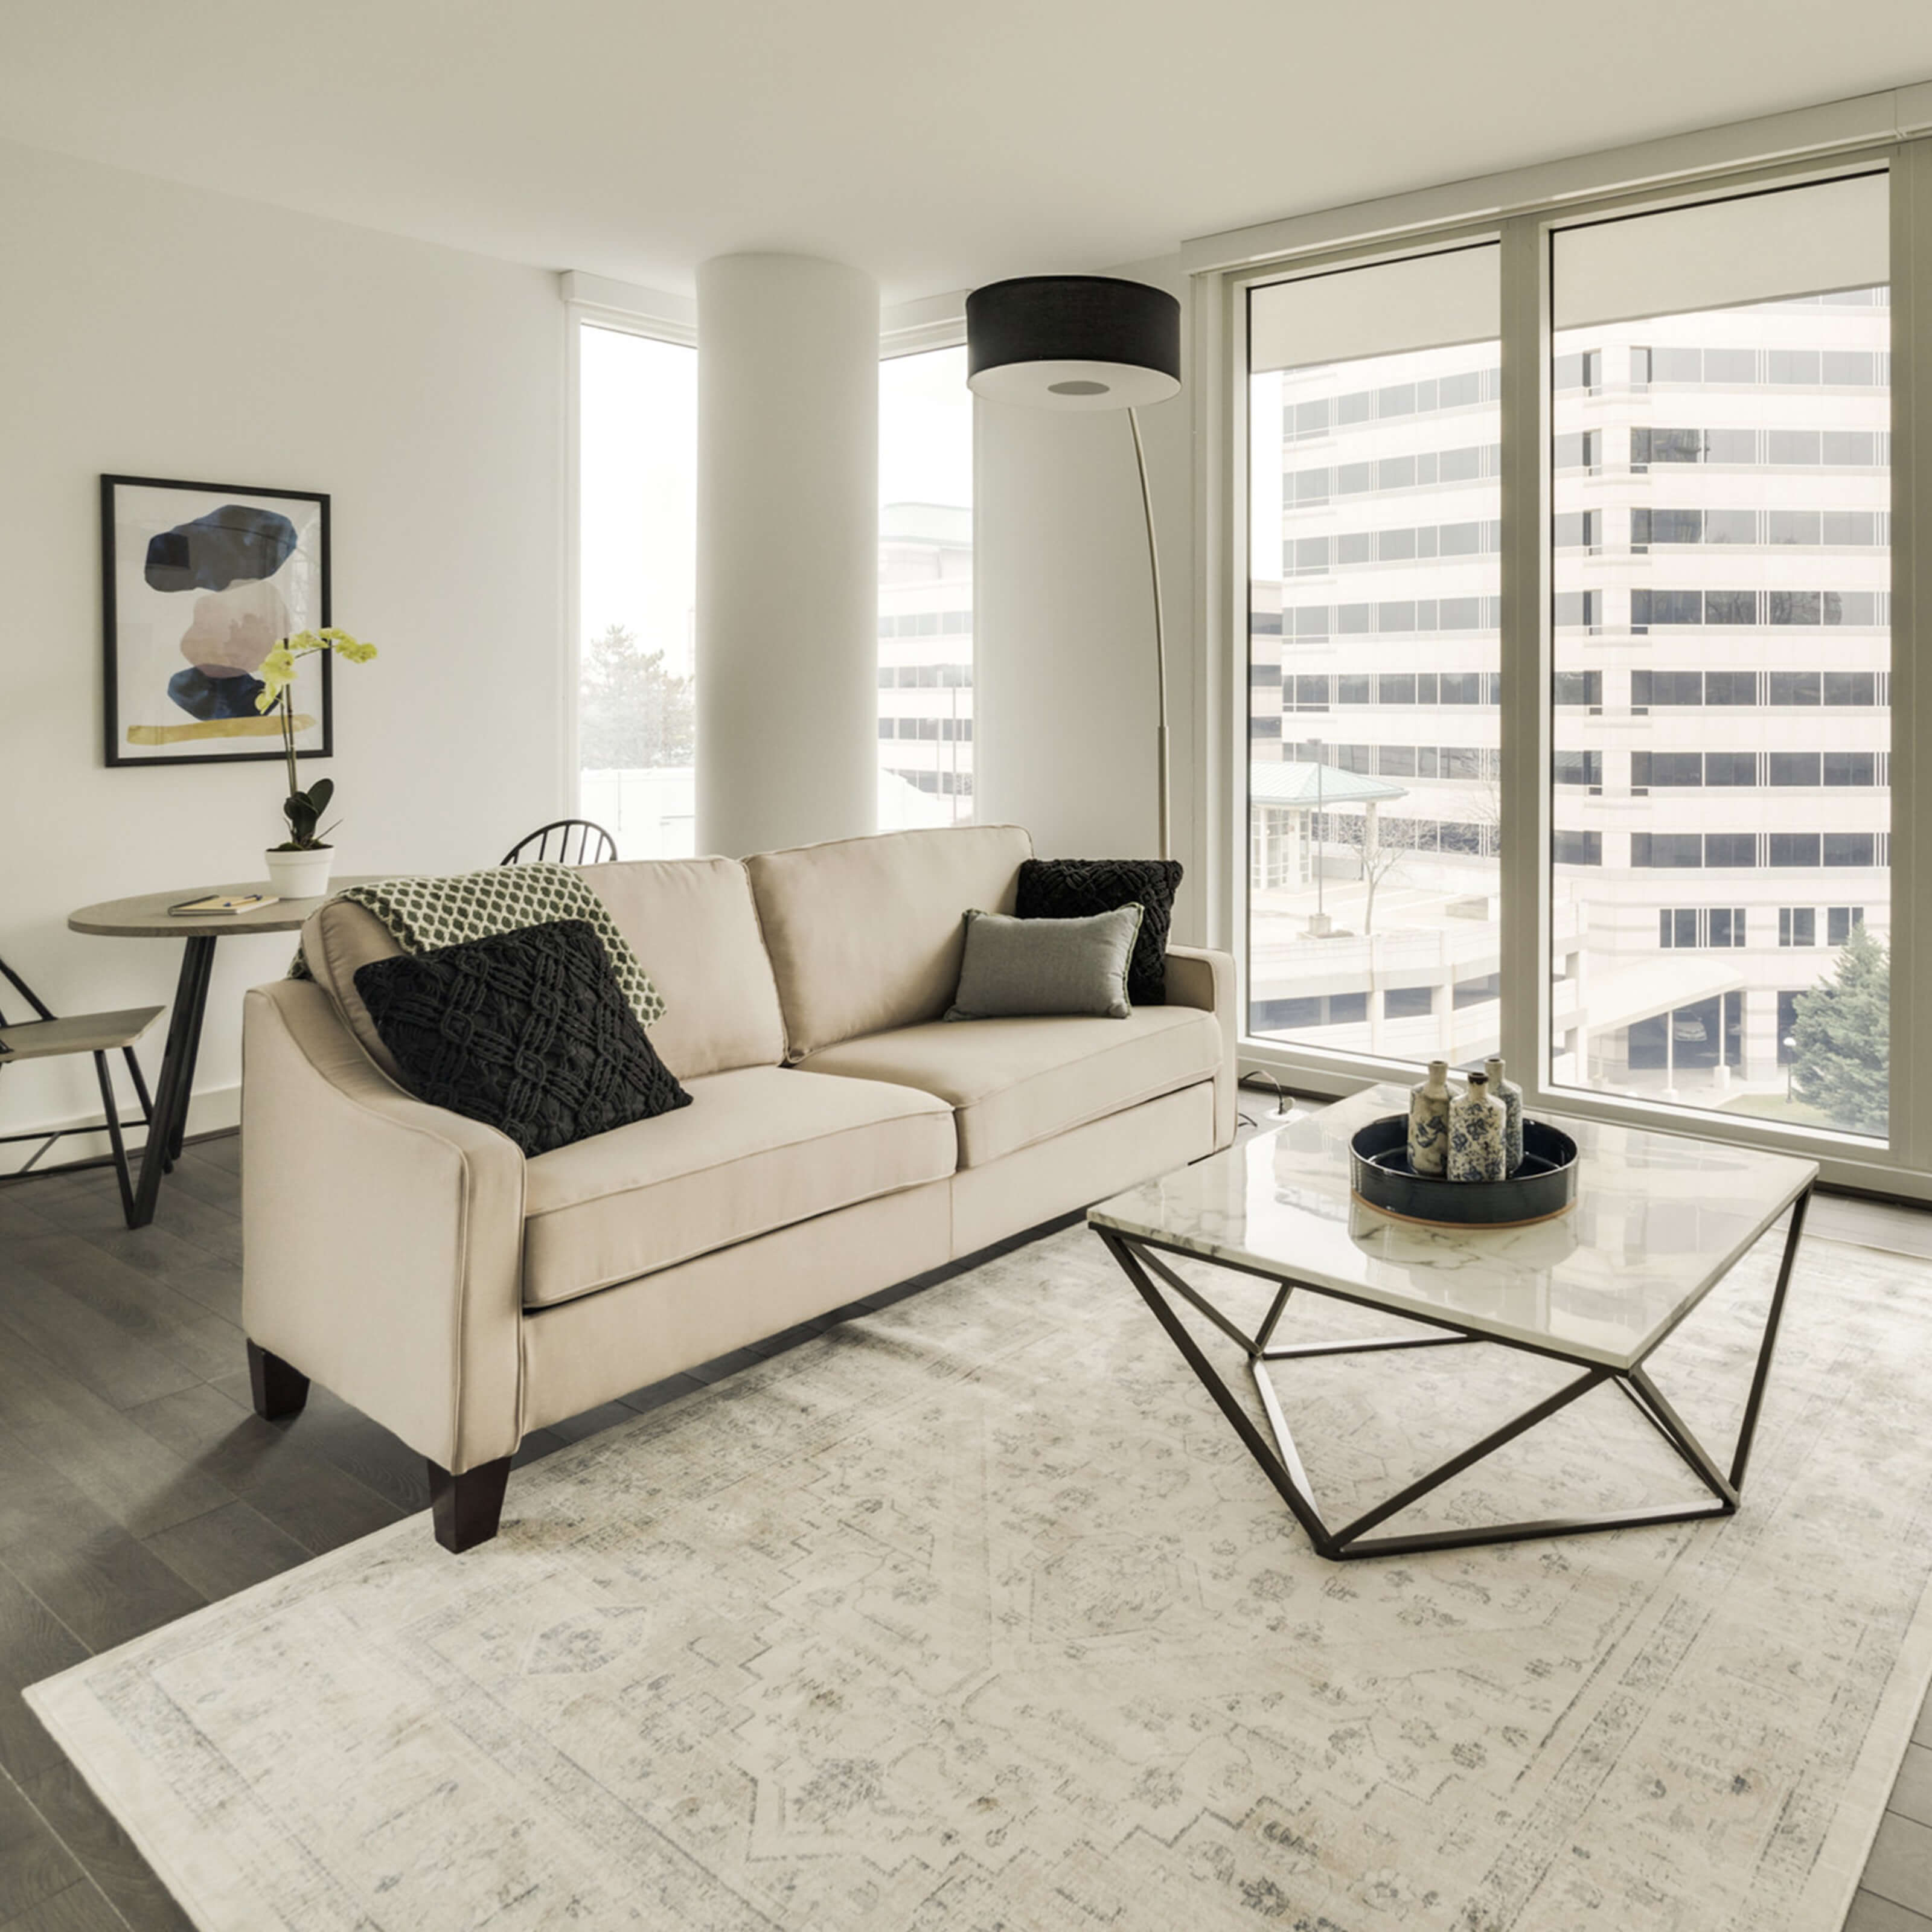 Designing for Luxury: 5 Principles to Transform Your Space